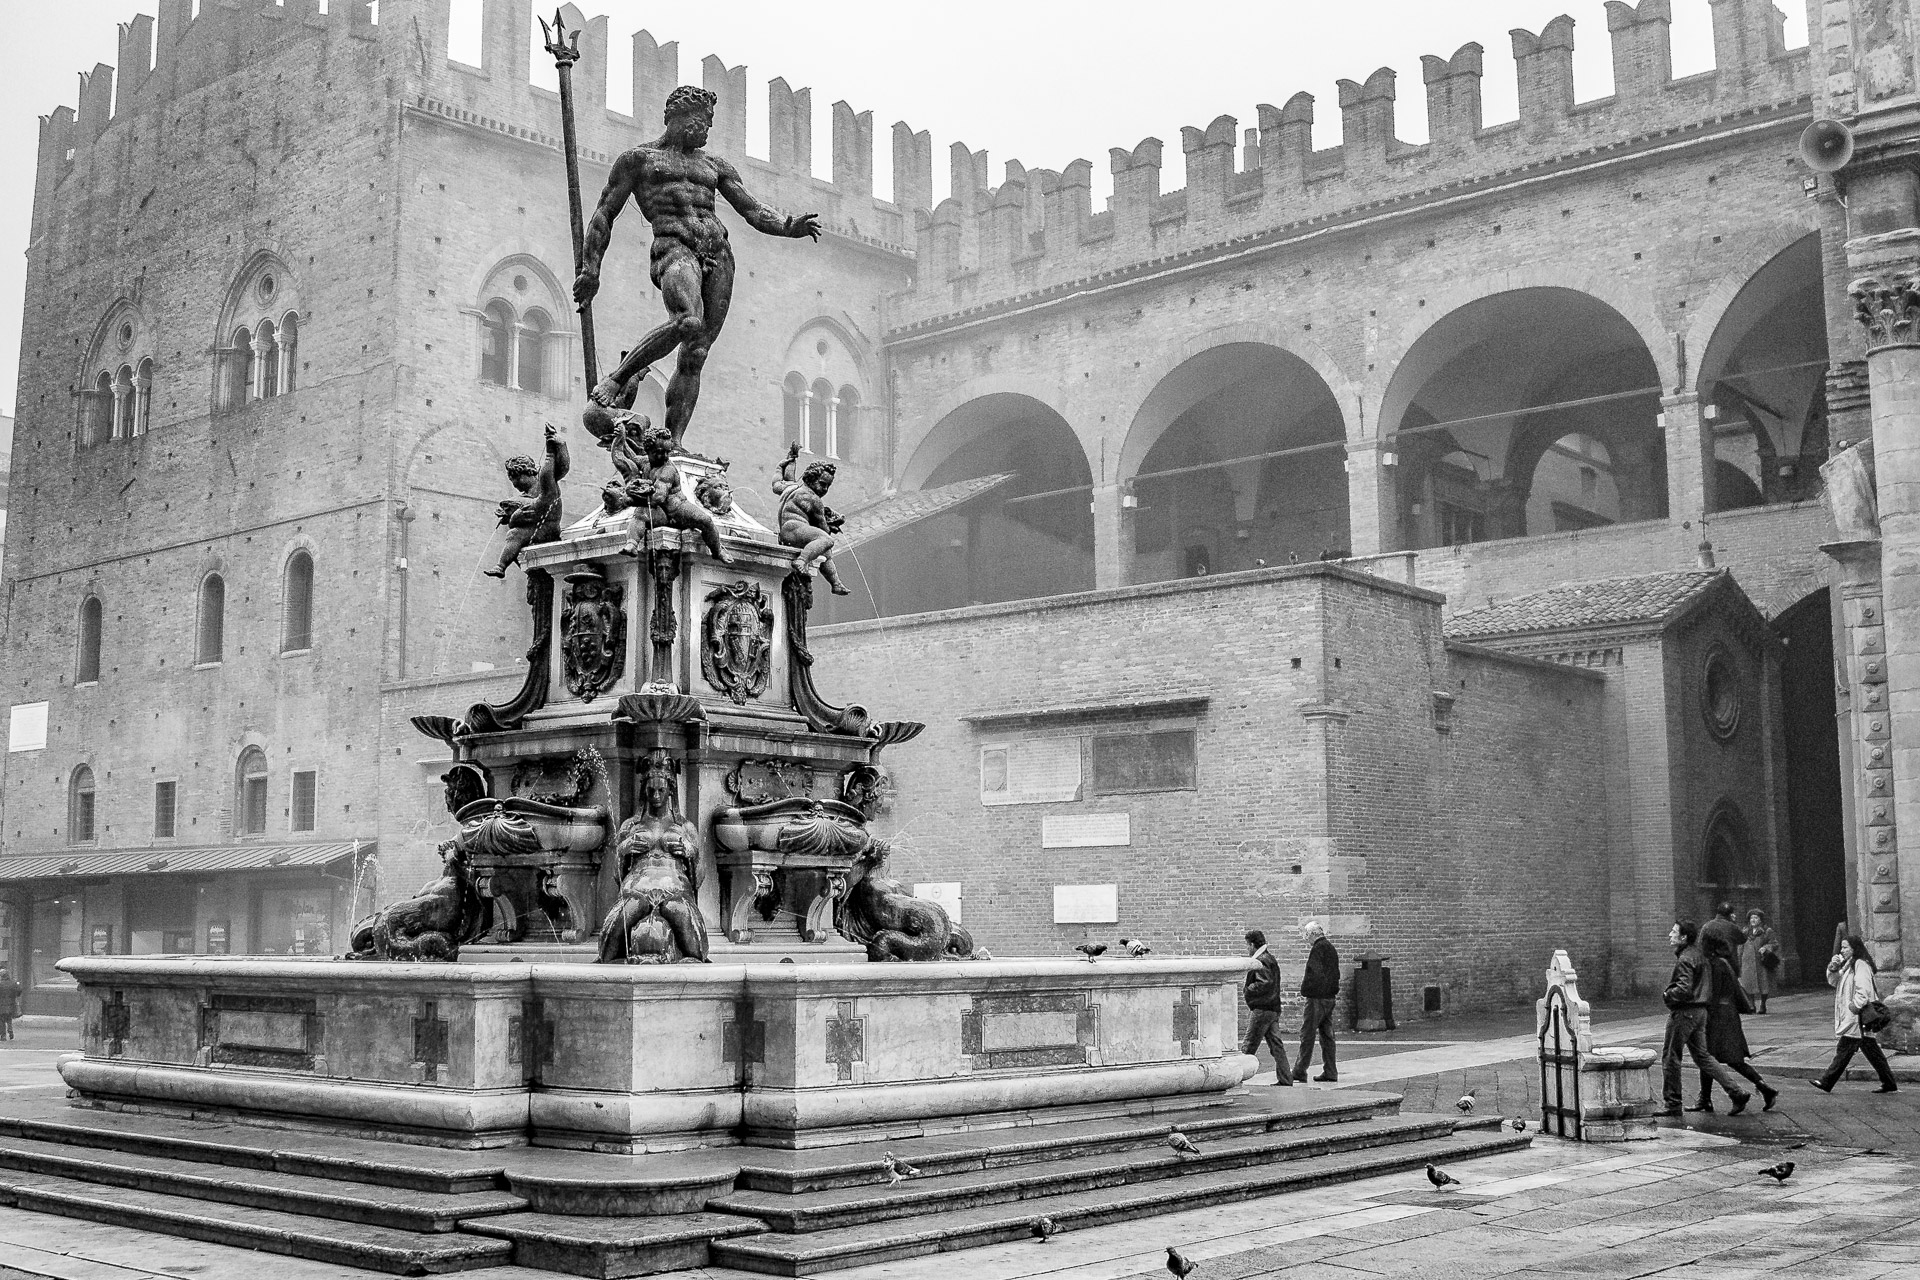 Statue of Neptune in Bologna